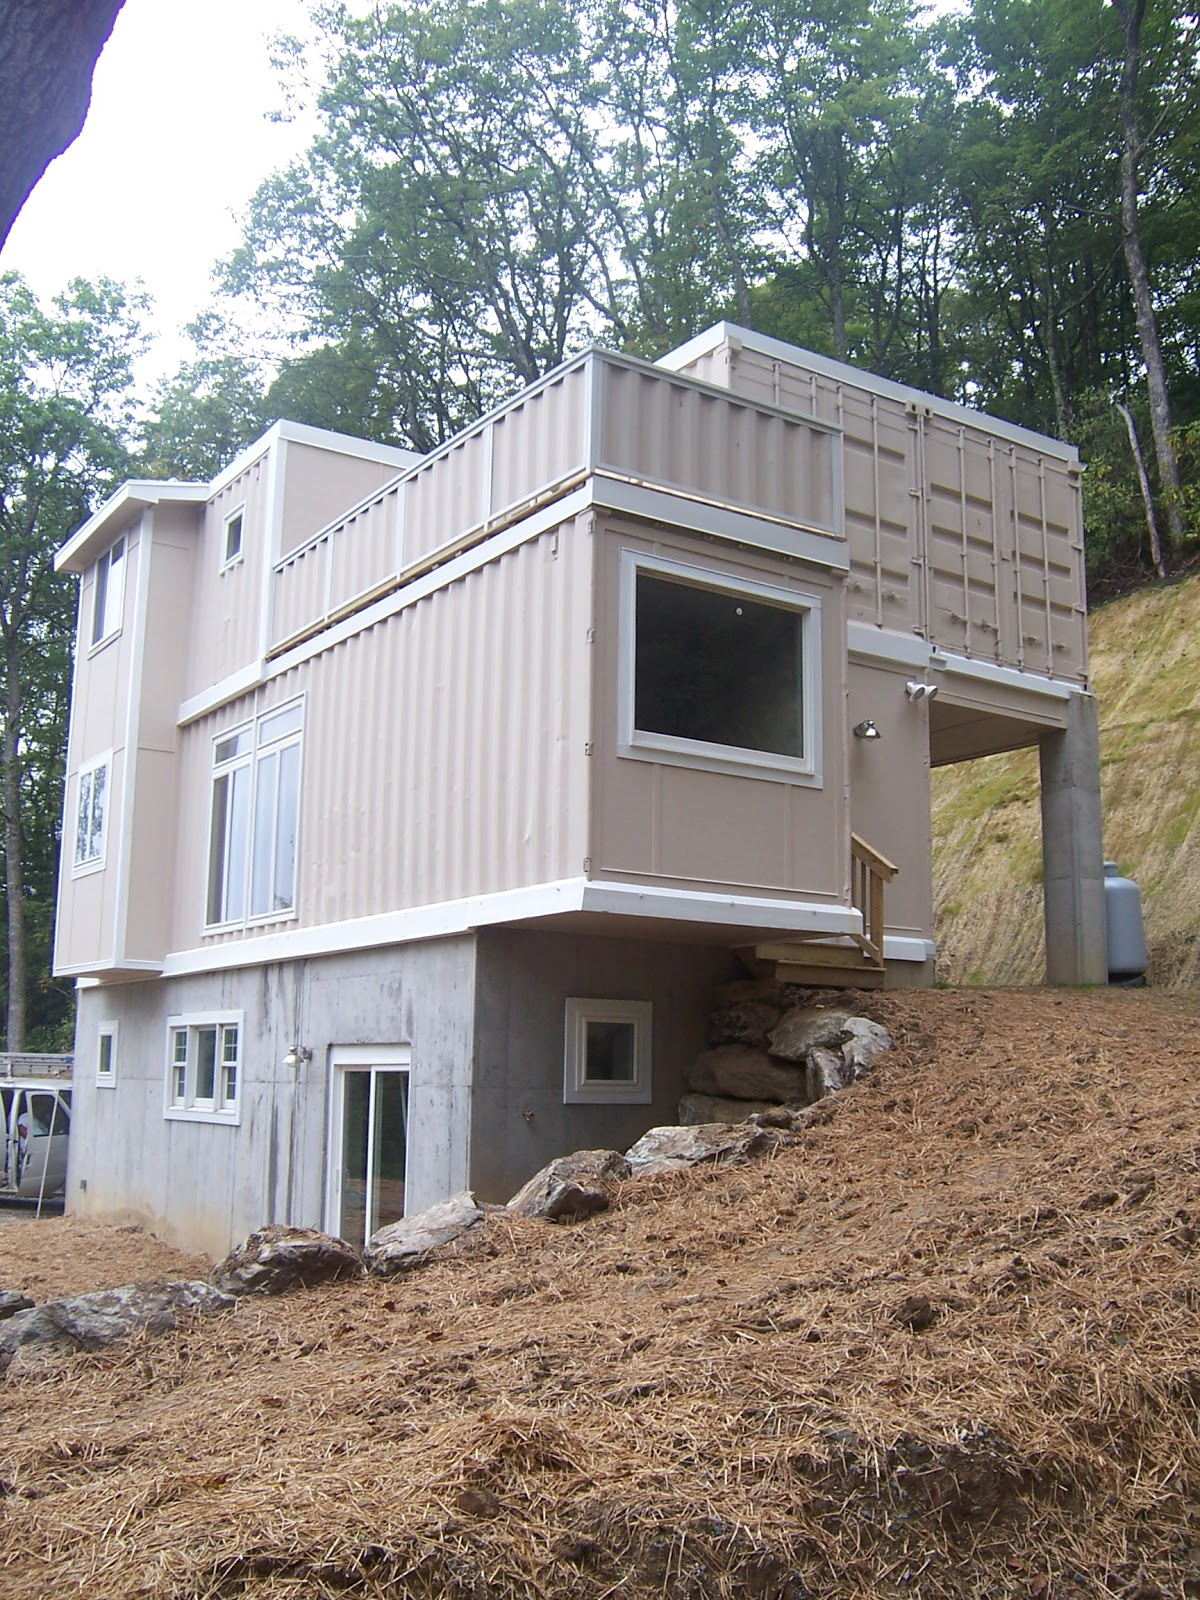 storage container houses images - reverse search